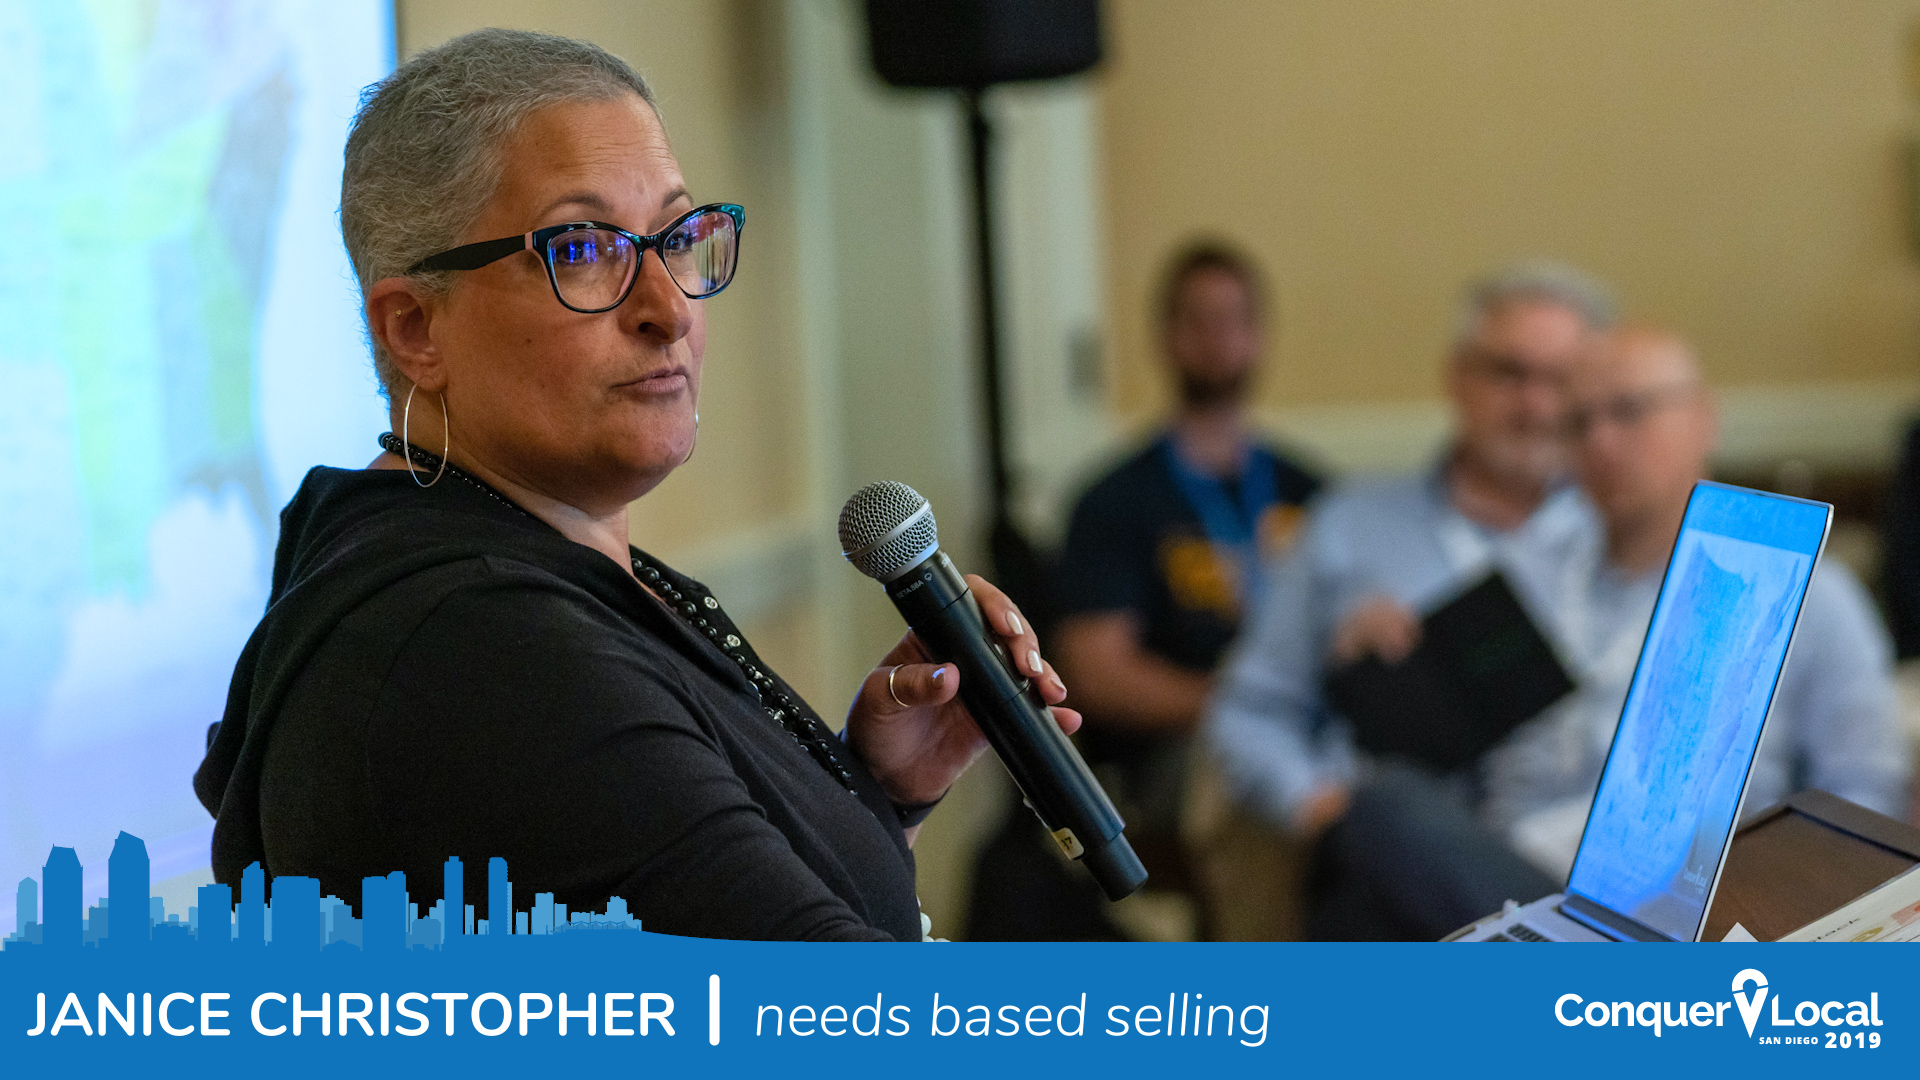 Janice Christopher | Needs based selling approach & high value customers